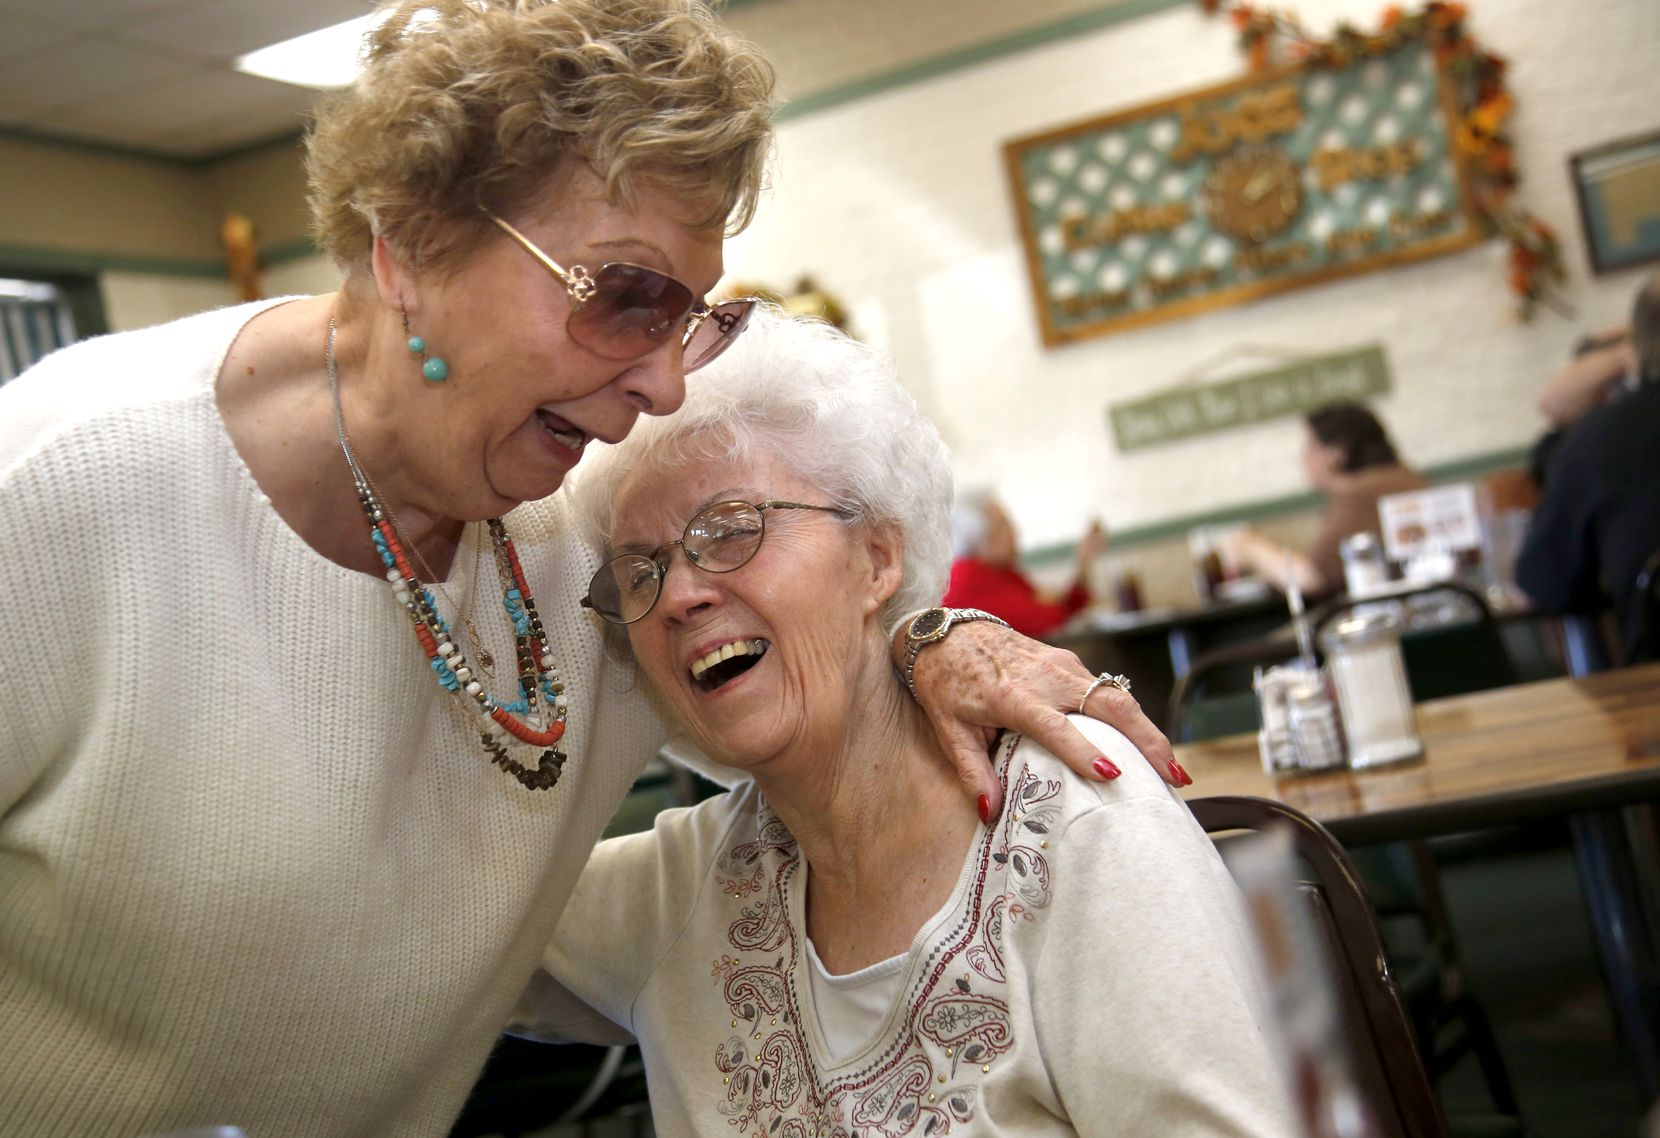 Carol Wood (right), owner of Joe's Coffee Shop, receives a hearty hug from longtime friend Jolene Lear at Joe's Coffee Shop Nov. 10, 2016 in Irving, Texas.